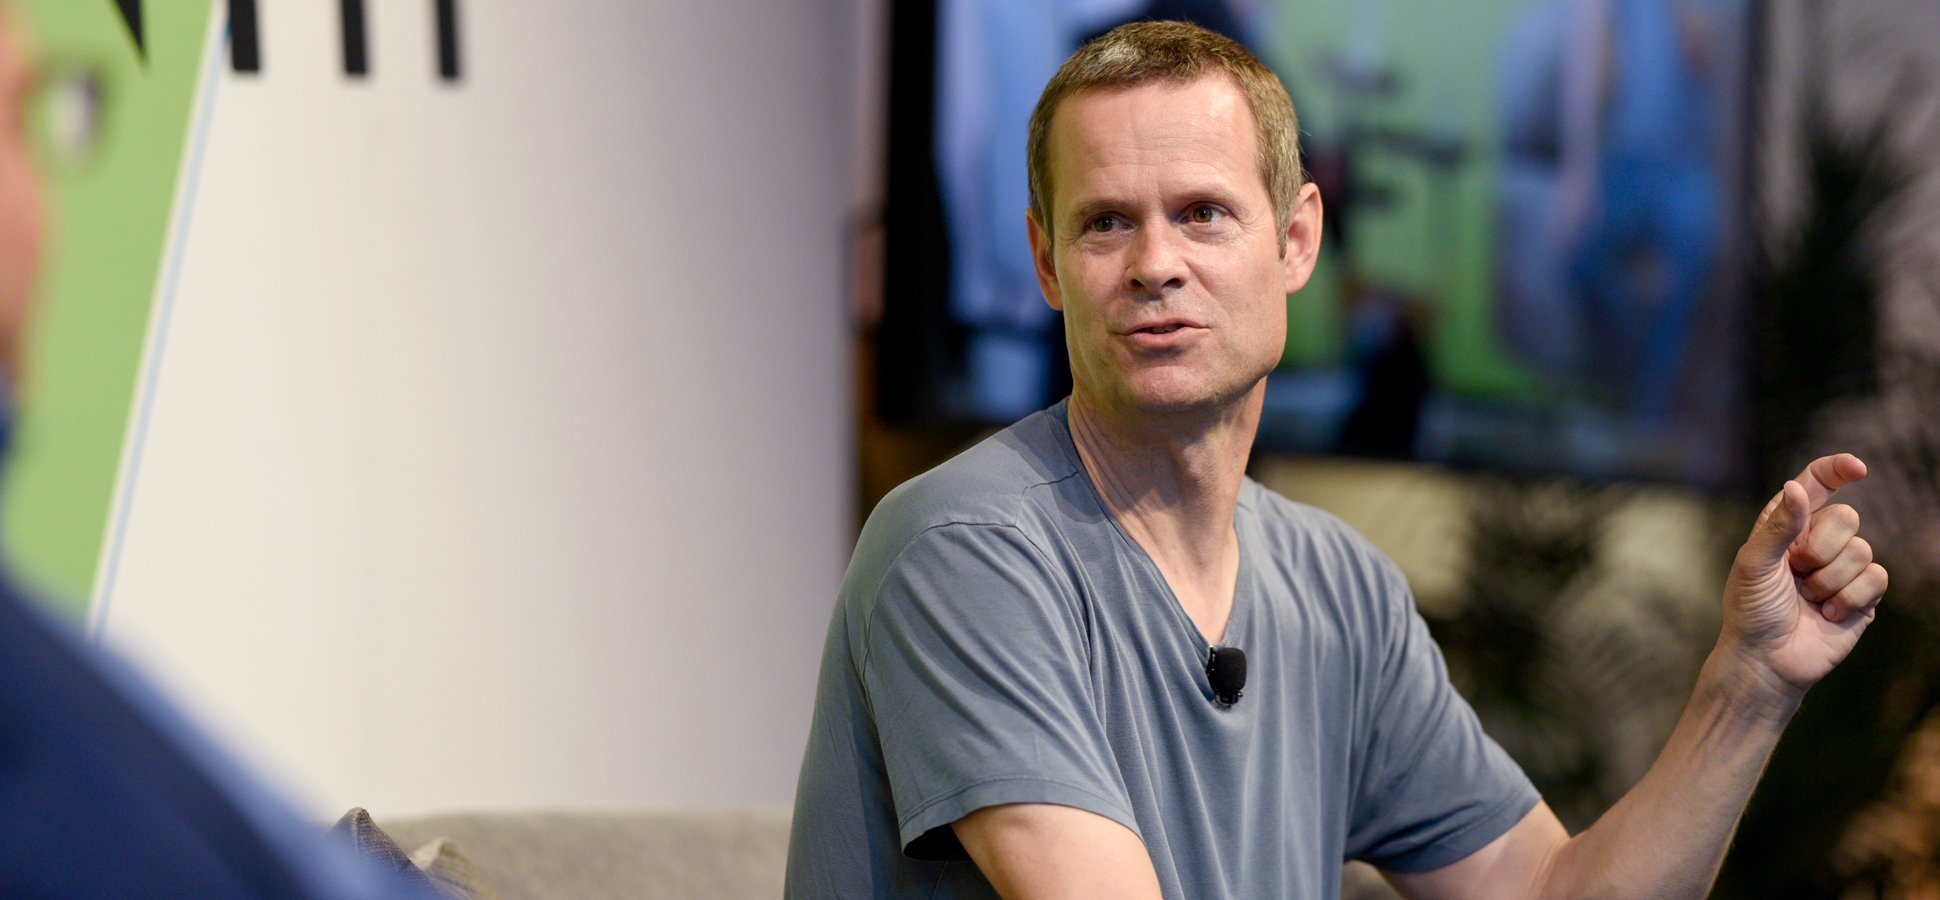 Want to Get an Investor's Attention? Pandora Co-Founder Tim Westergren Has 3 Tips